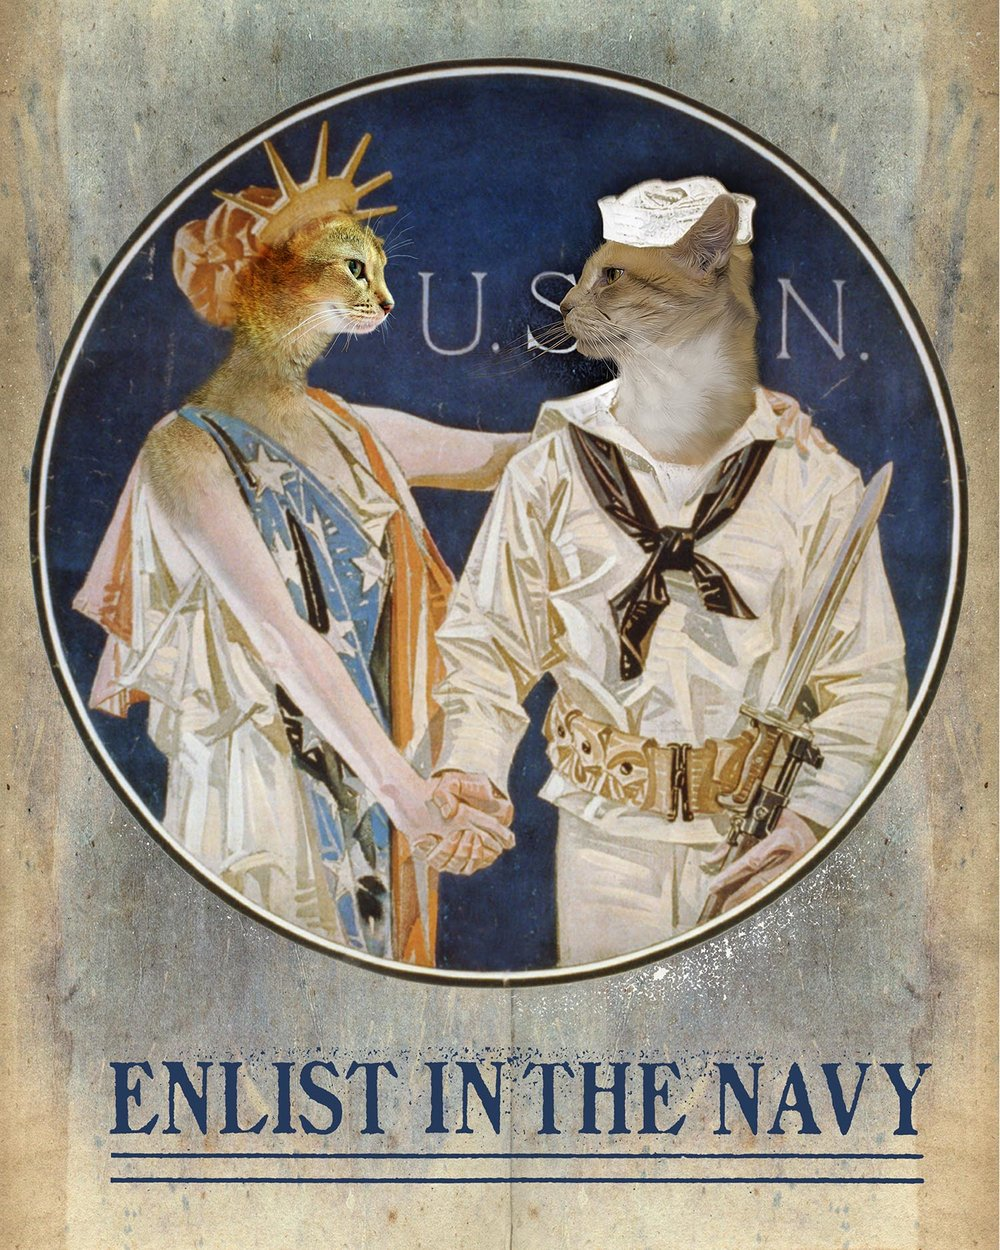 Enlist in the Navy